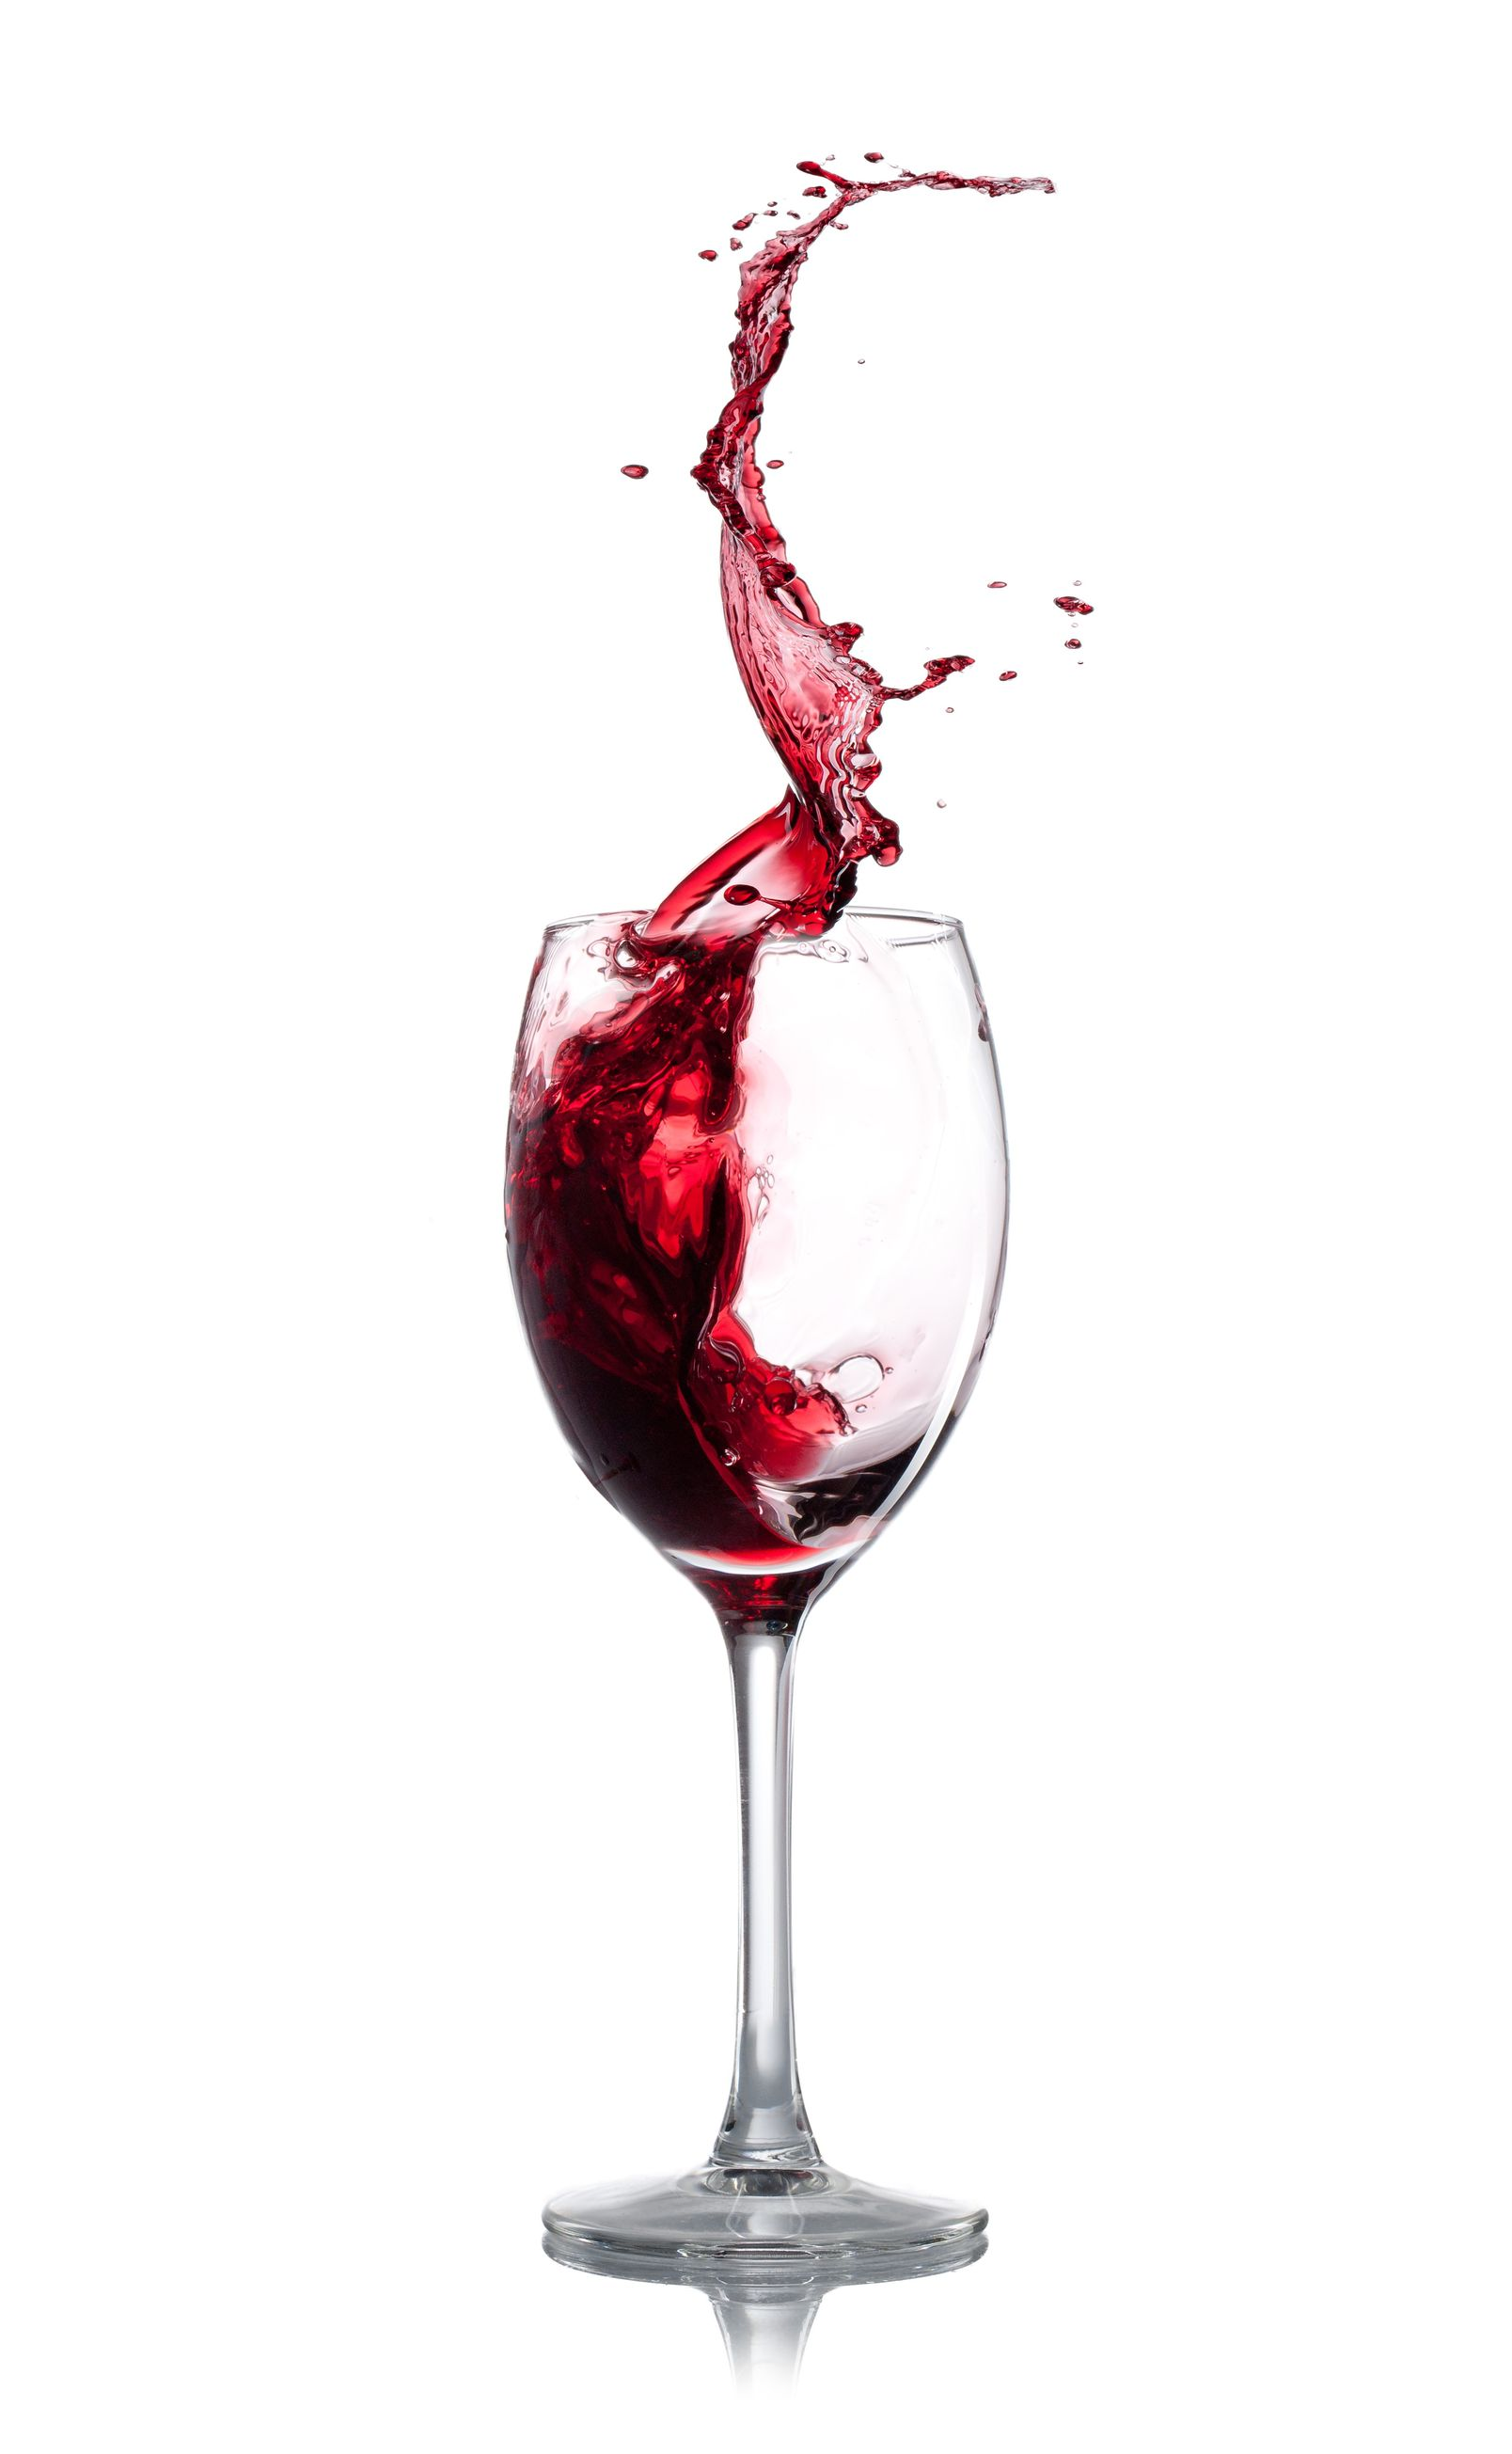 18060213 – red wine splash over white background